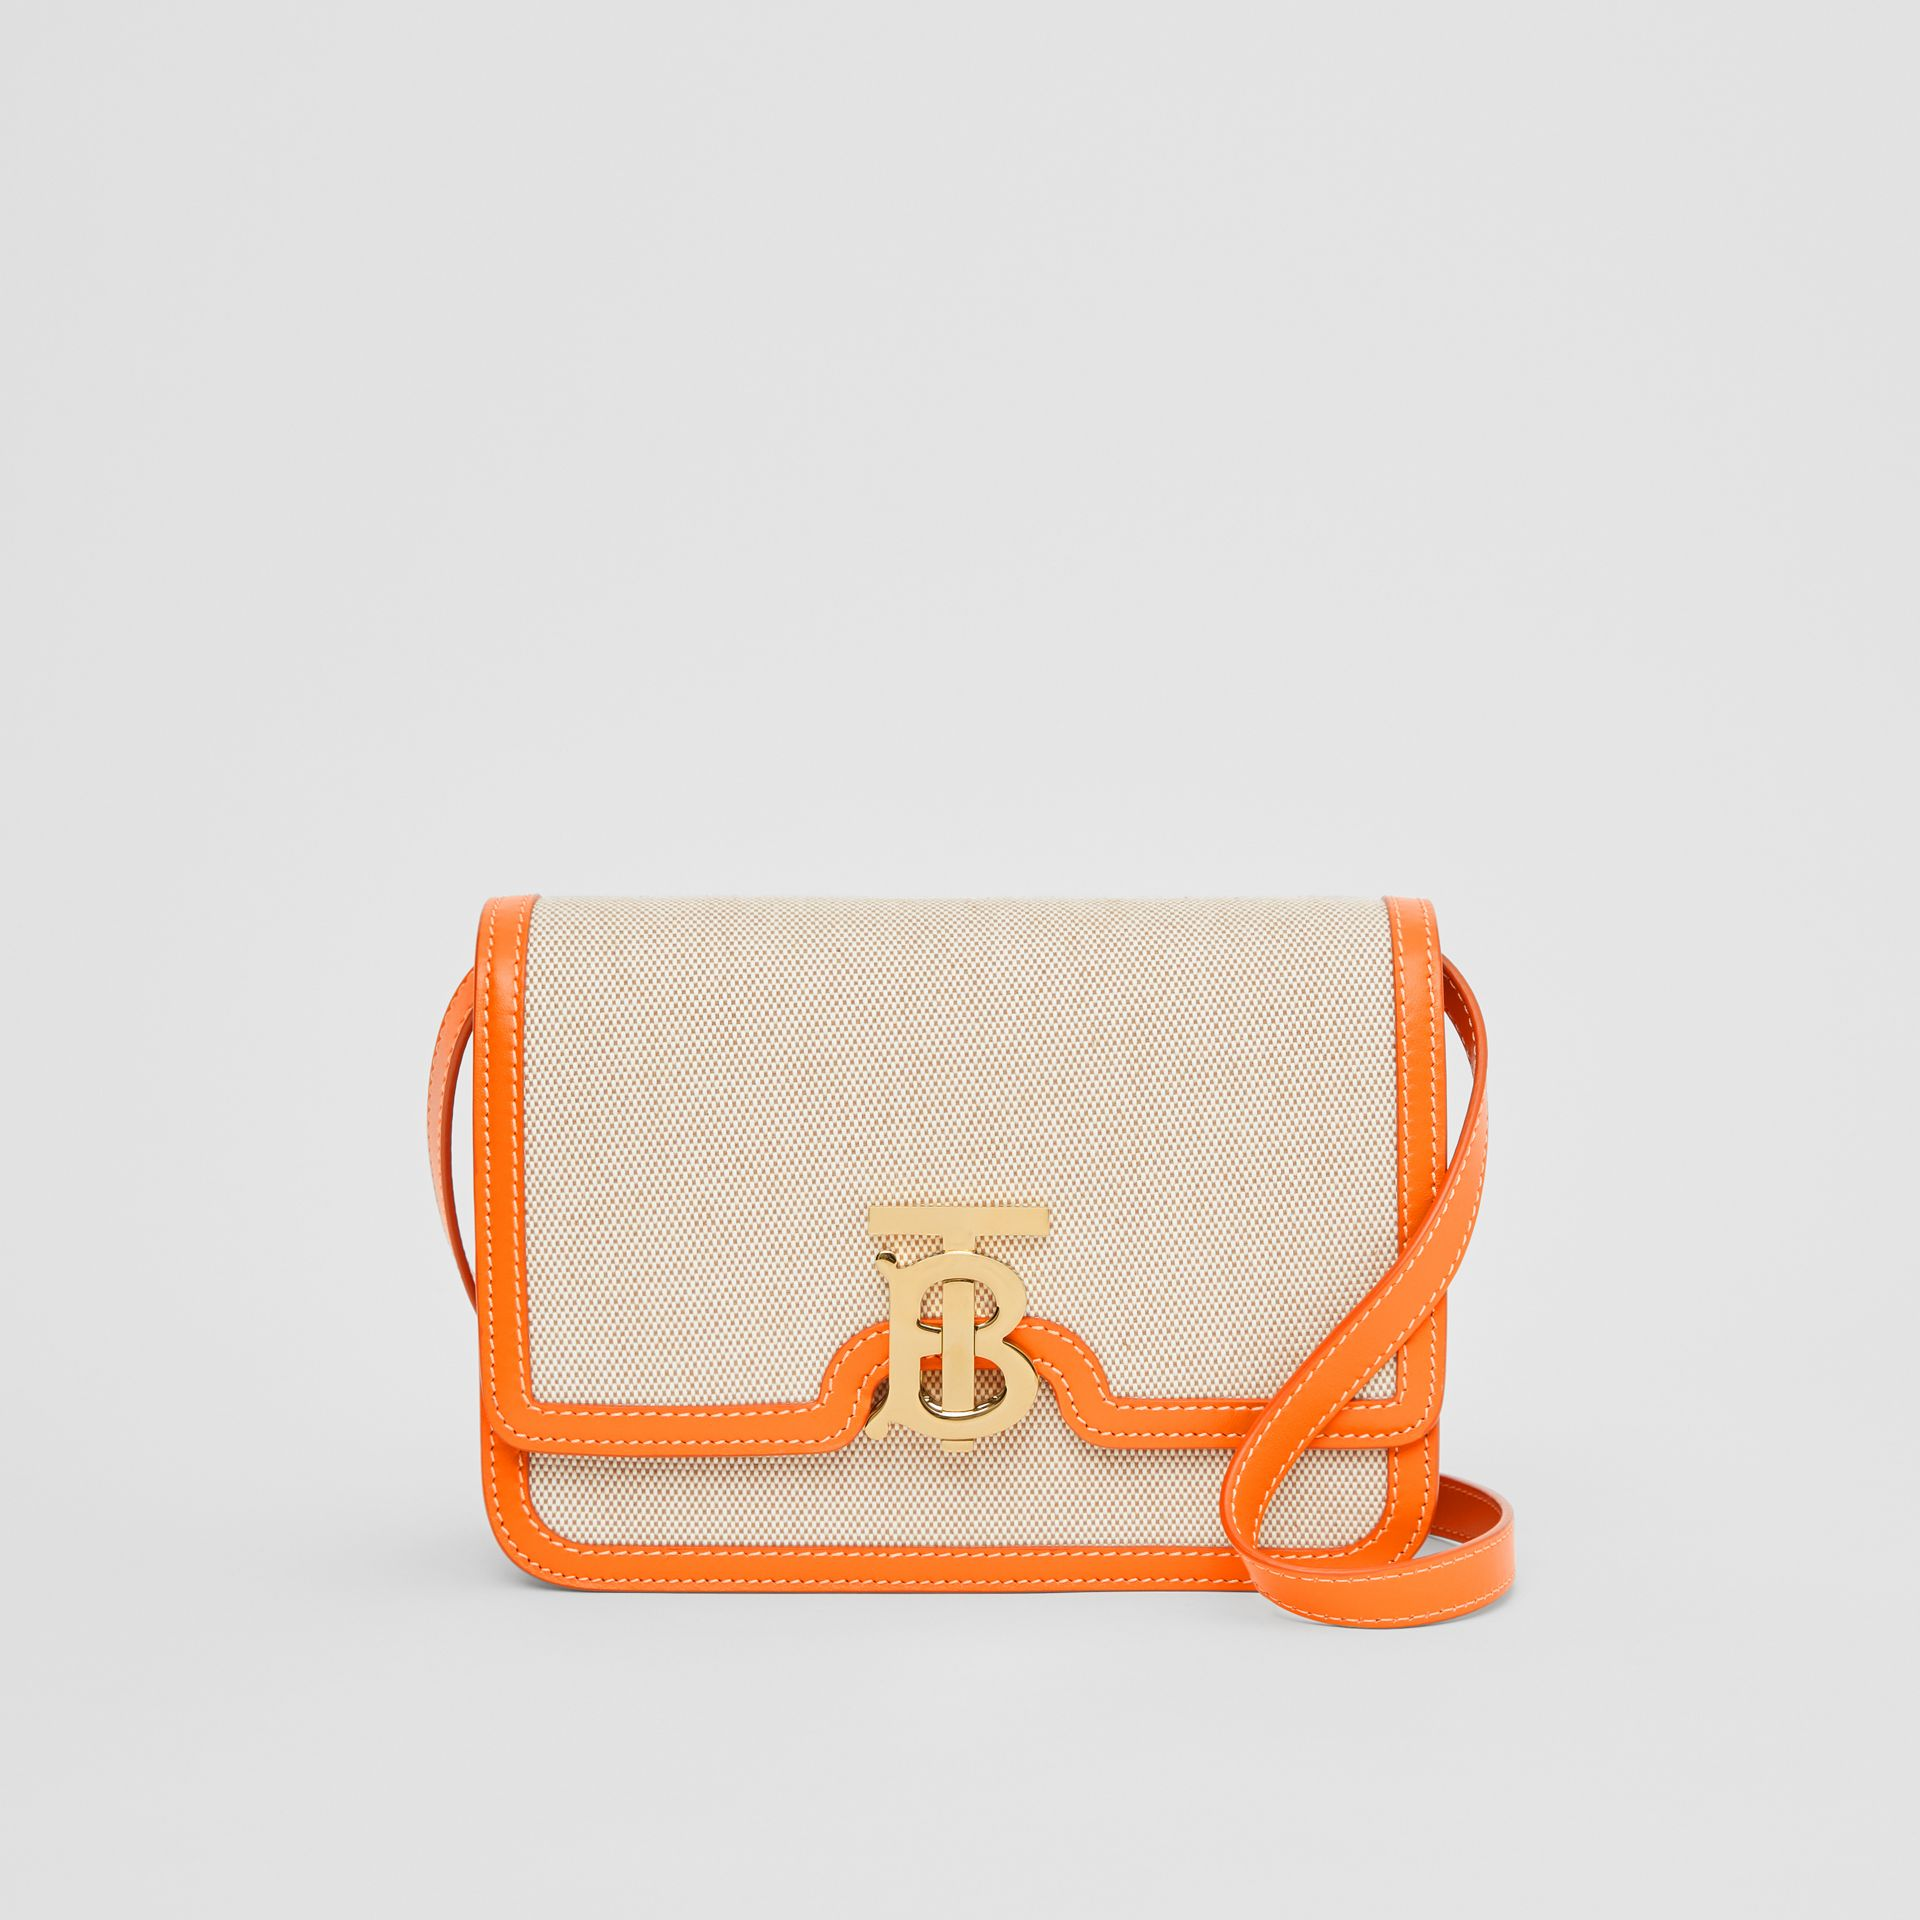 Small Two-tone Canvas and Leather TB Bag in Orange - Women | Burberry Australia - gallery image 0